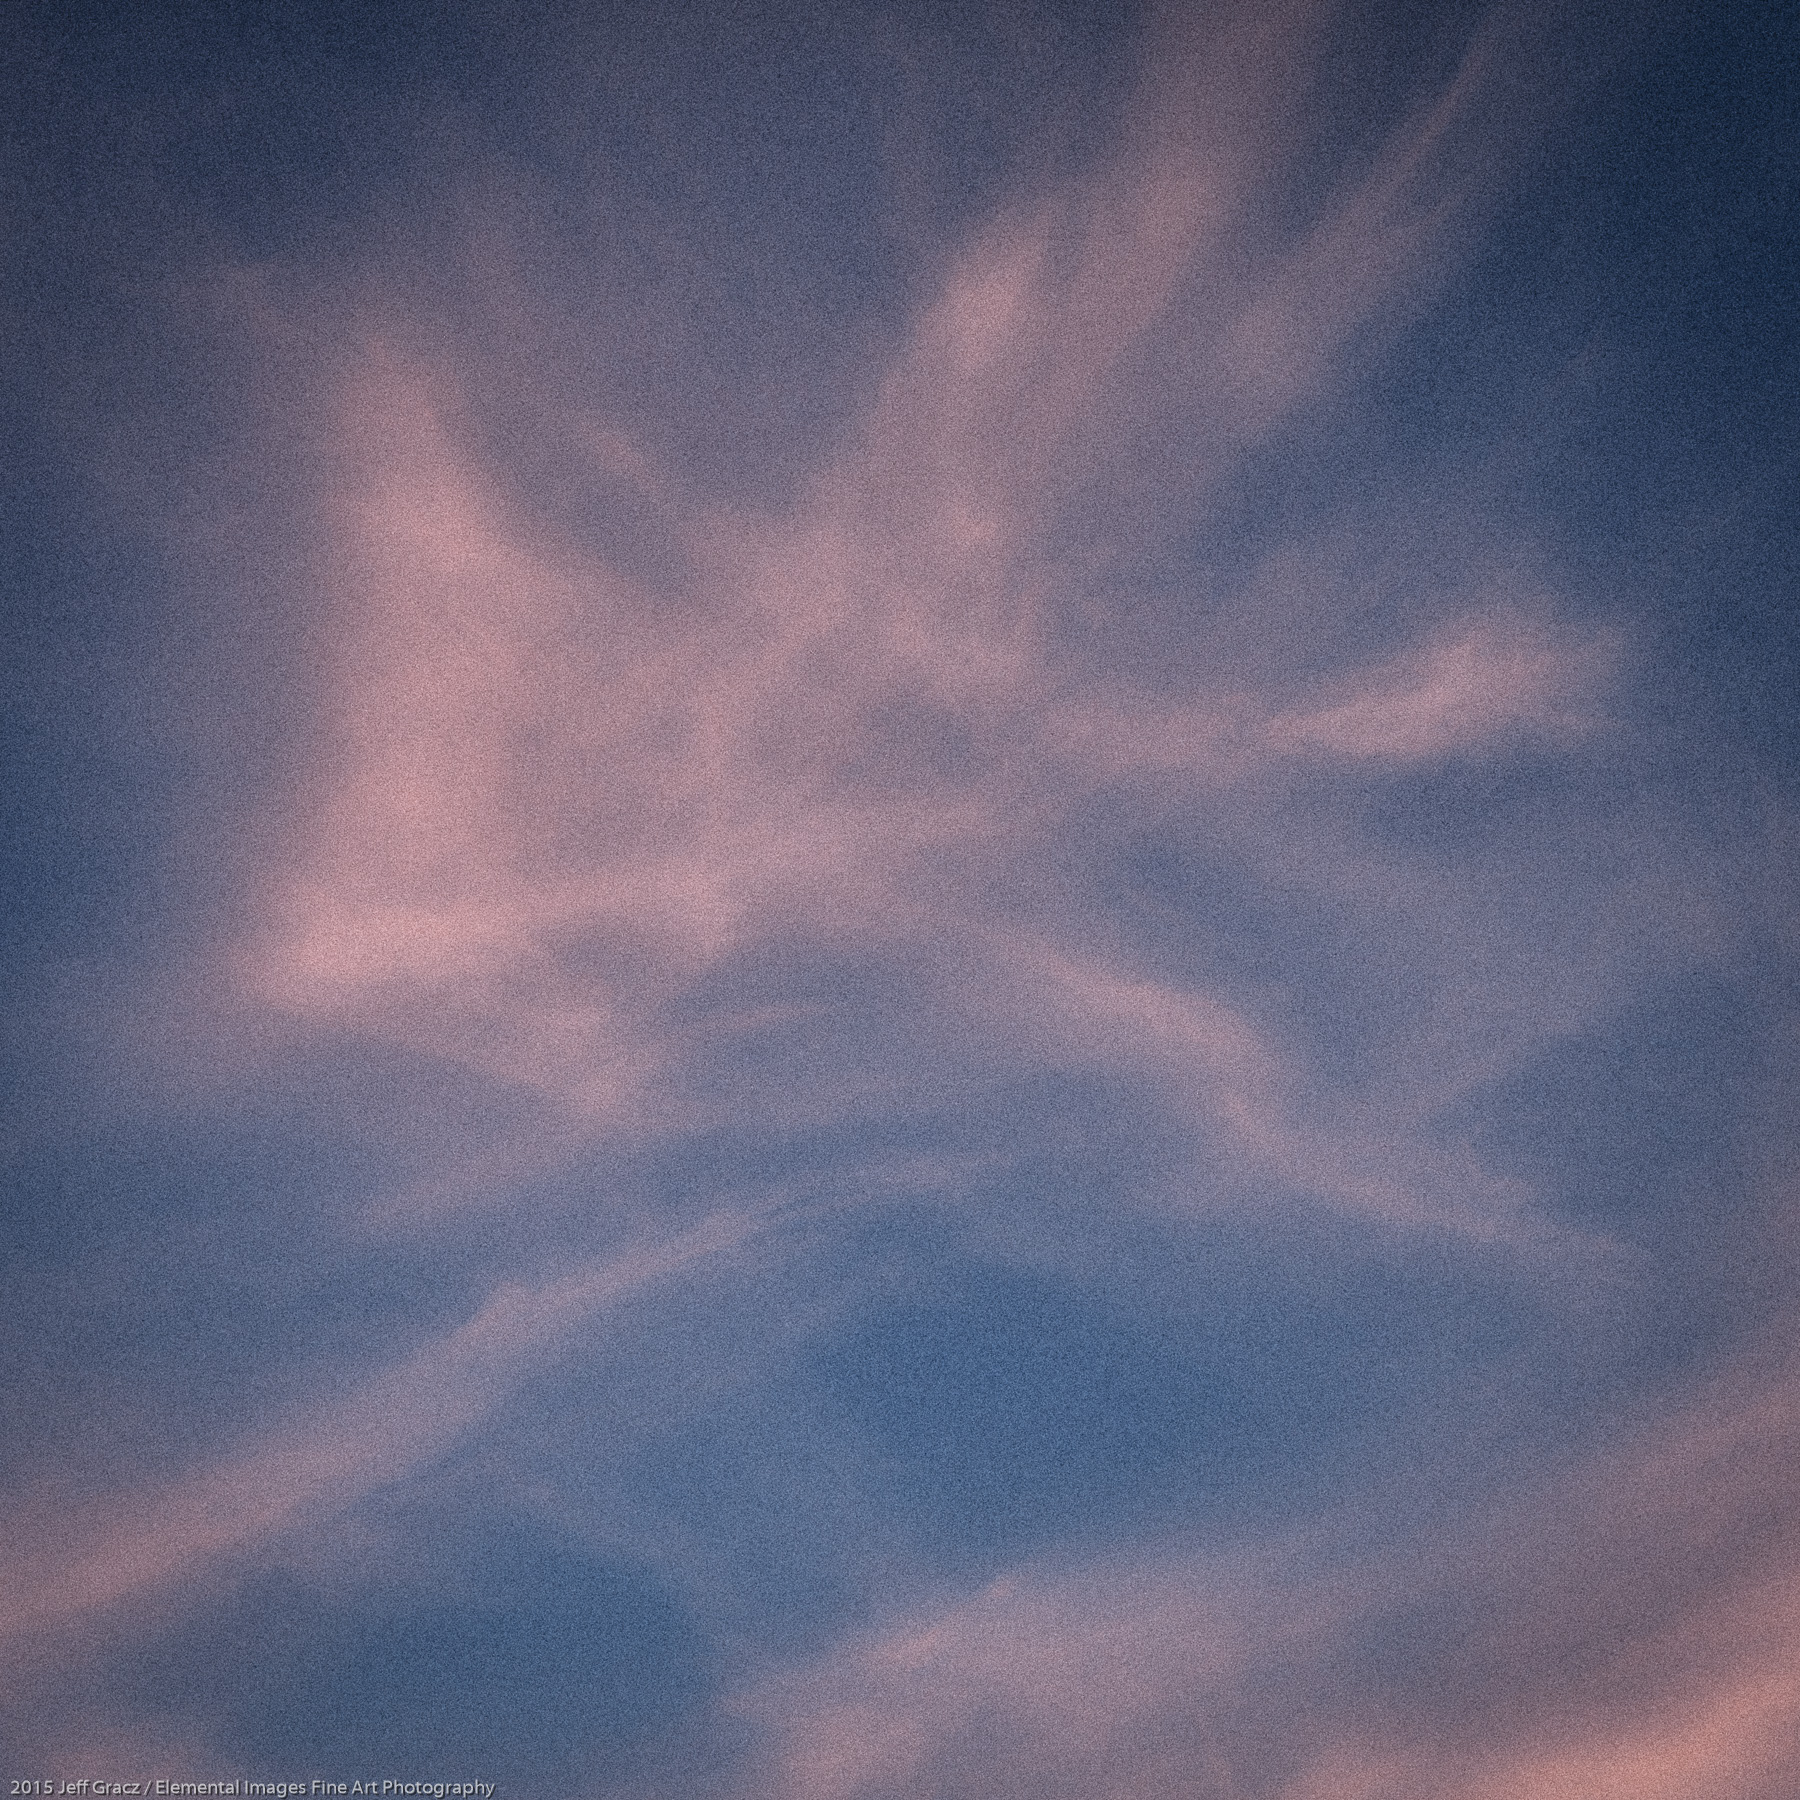 Skyscapes #1   Vancouver   WA   USA - © 2015 Jeff Gracz / Elemental Images Fine Art Photography - All Rights Reserved Worldwide